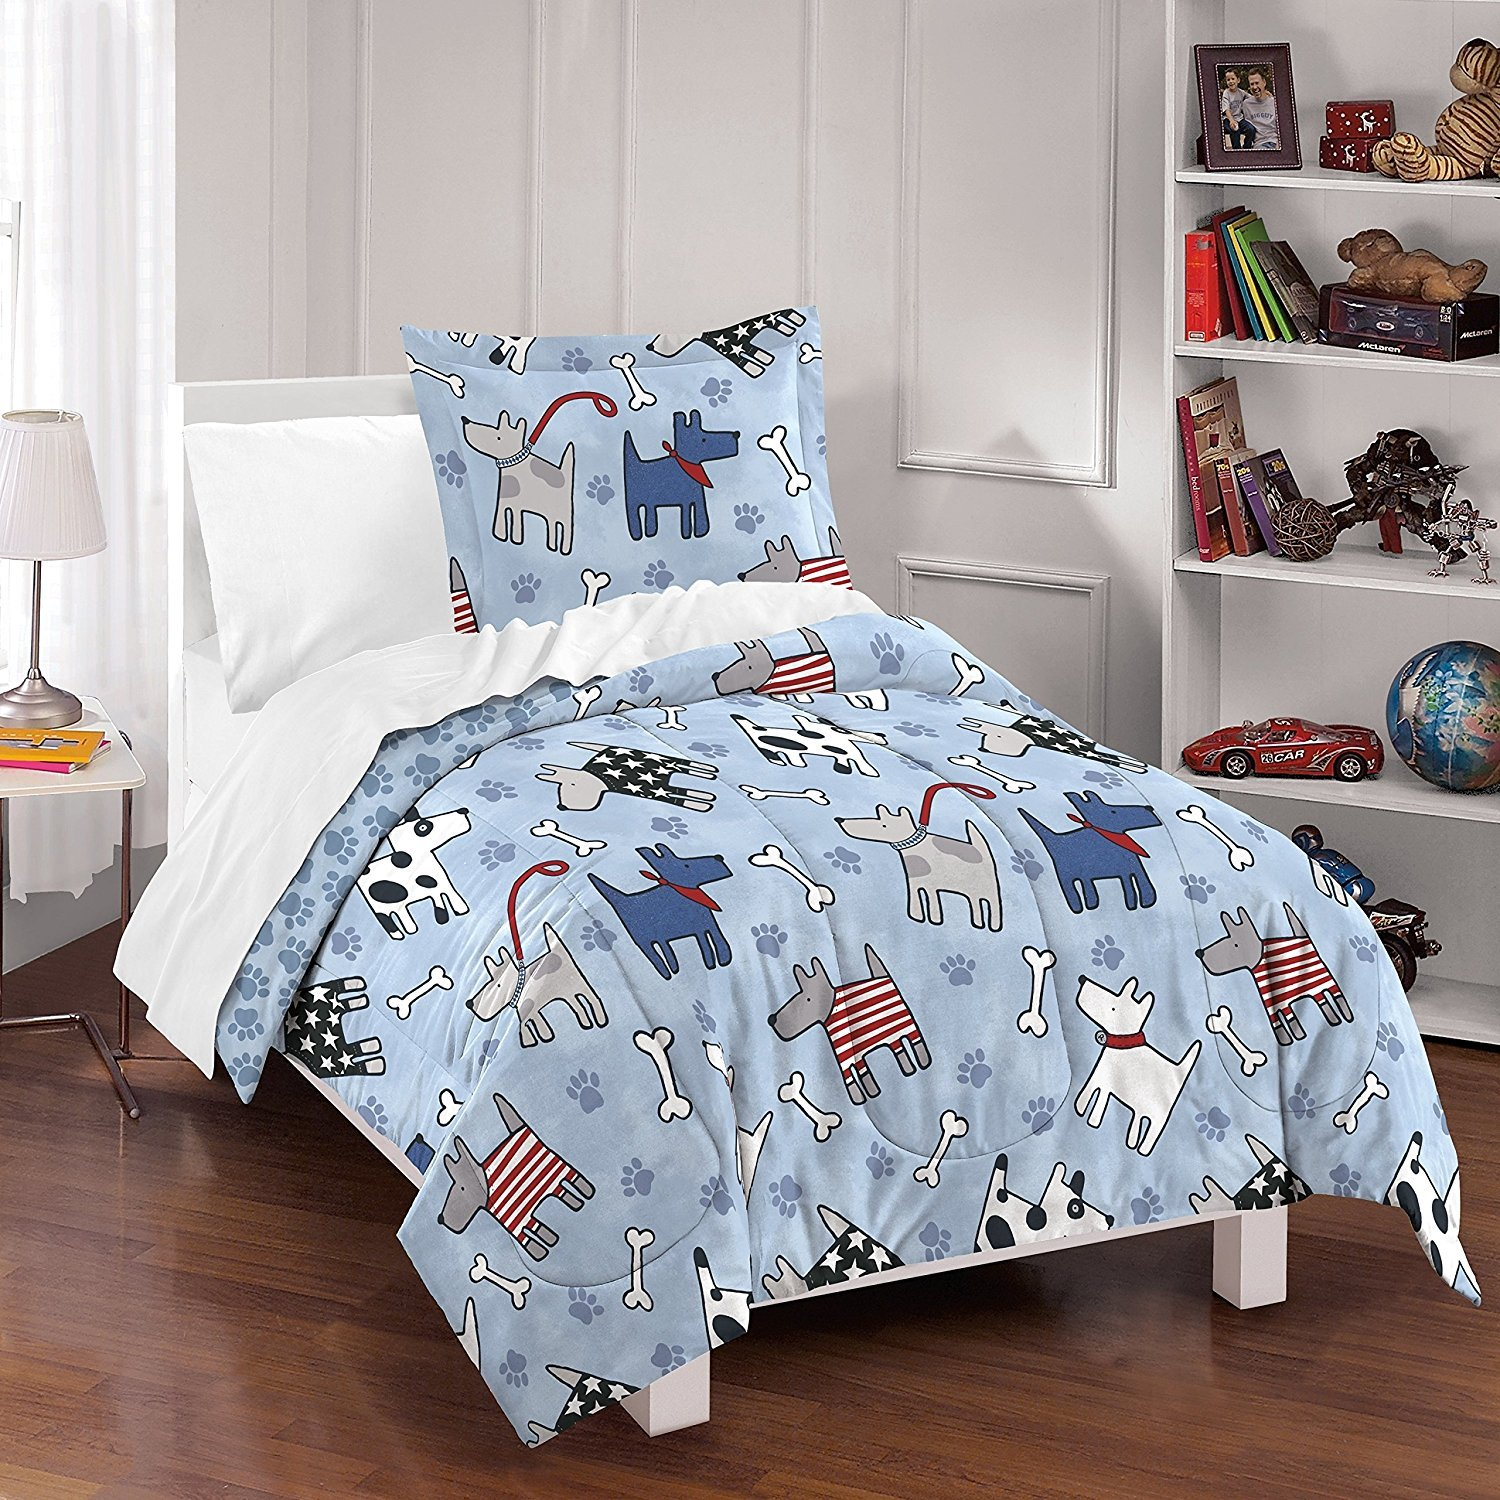 3pc Kids White Red Blue Puppy Dog Comforter Full Queen Set, Cotton, Dog Themed Bedding Puppies Doggy Bones Playful Cute Dressed Up Pooches Hound Adorable Paw Prints Black